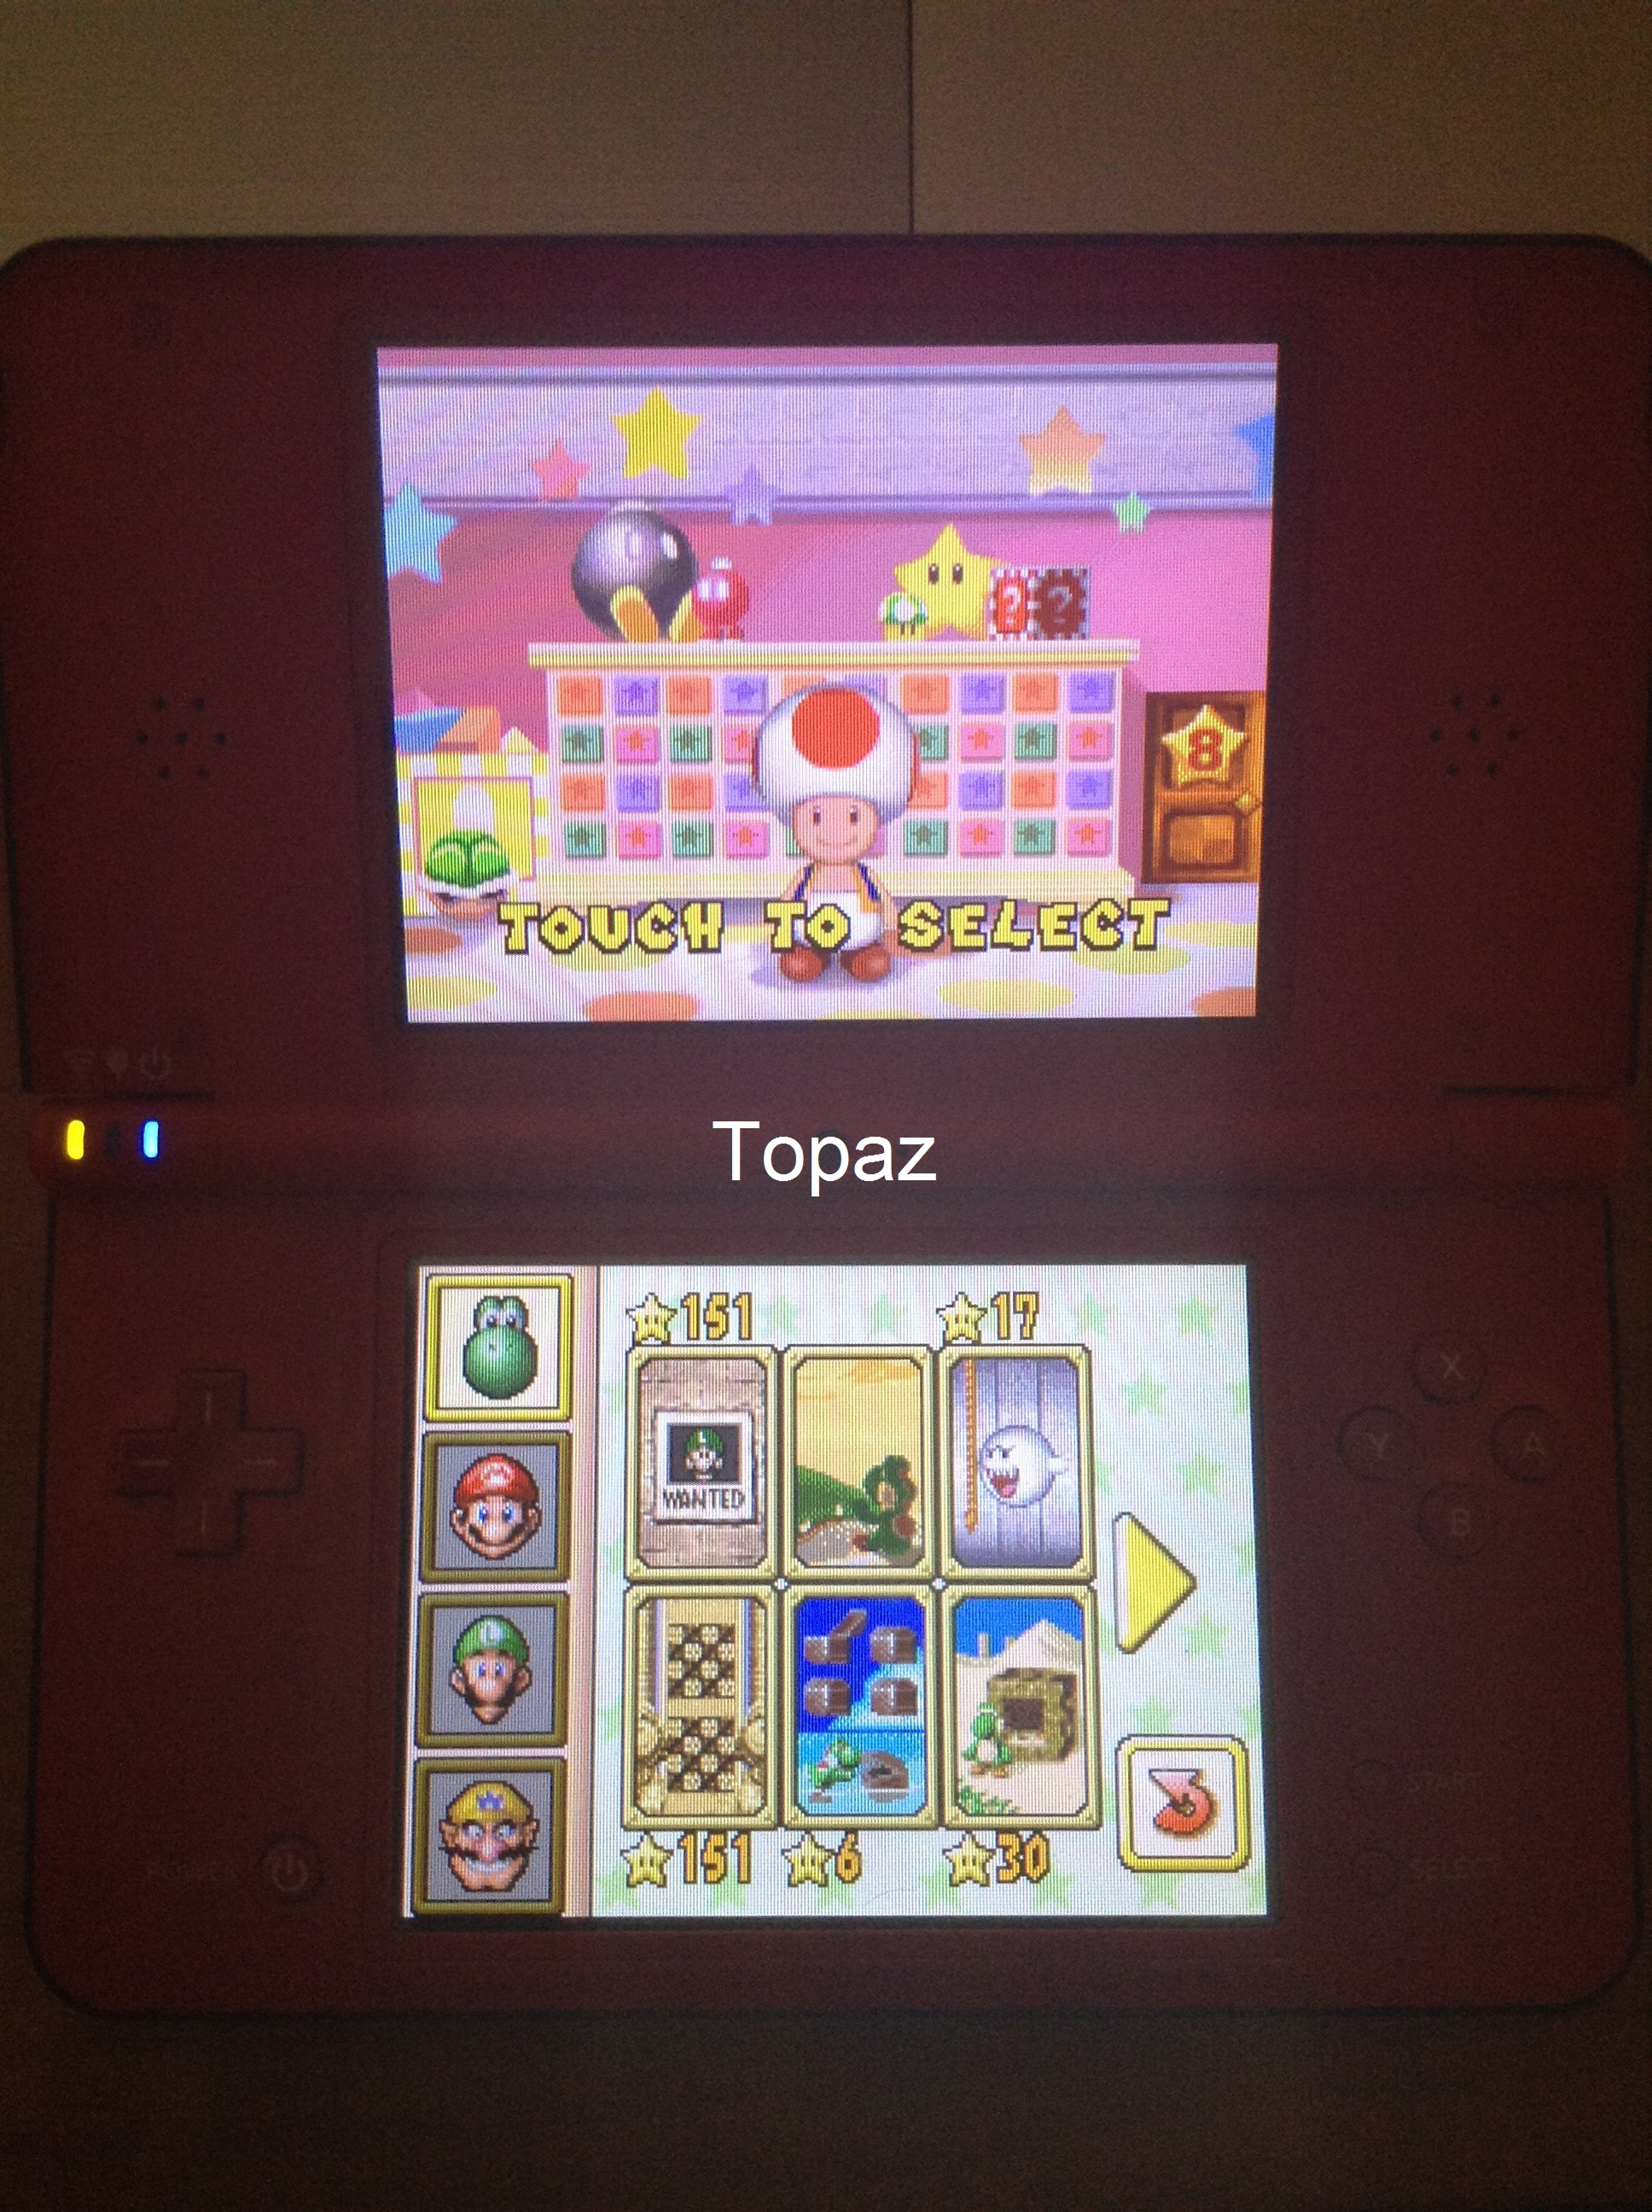 Topaz: Super Mario 64 DS: Hide and Boo Seek (Nintendo DS) 17 points on 2019-10-18 19:35:15